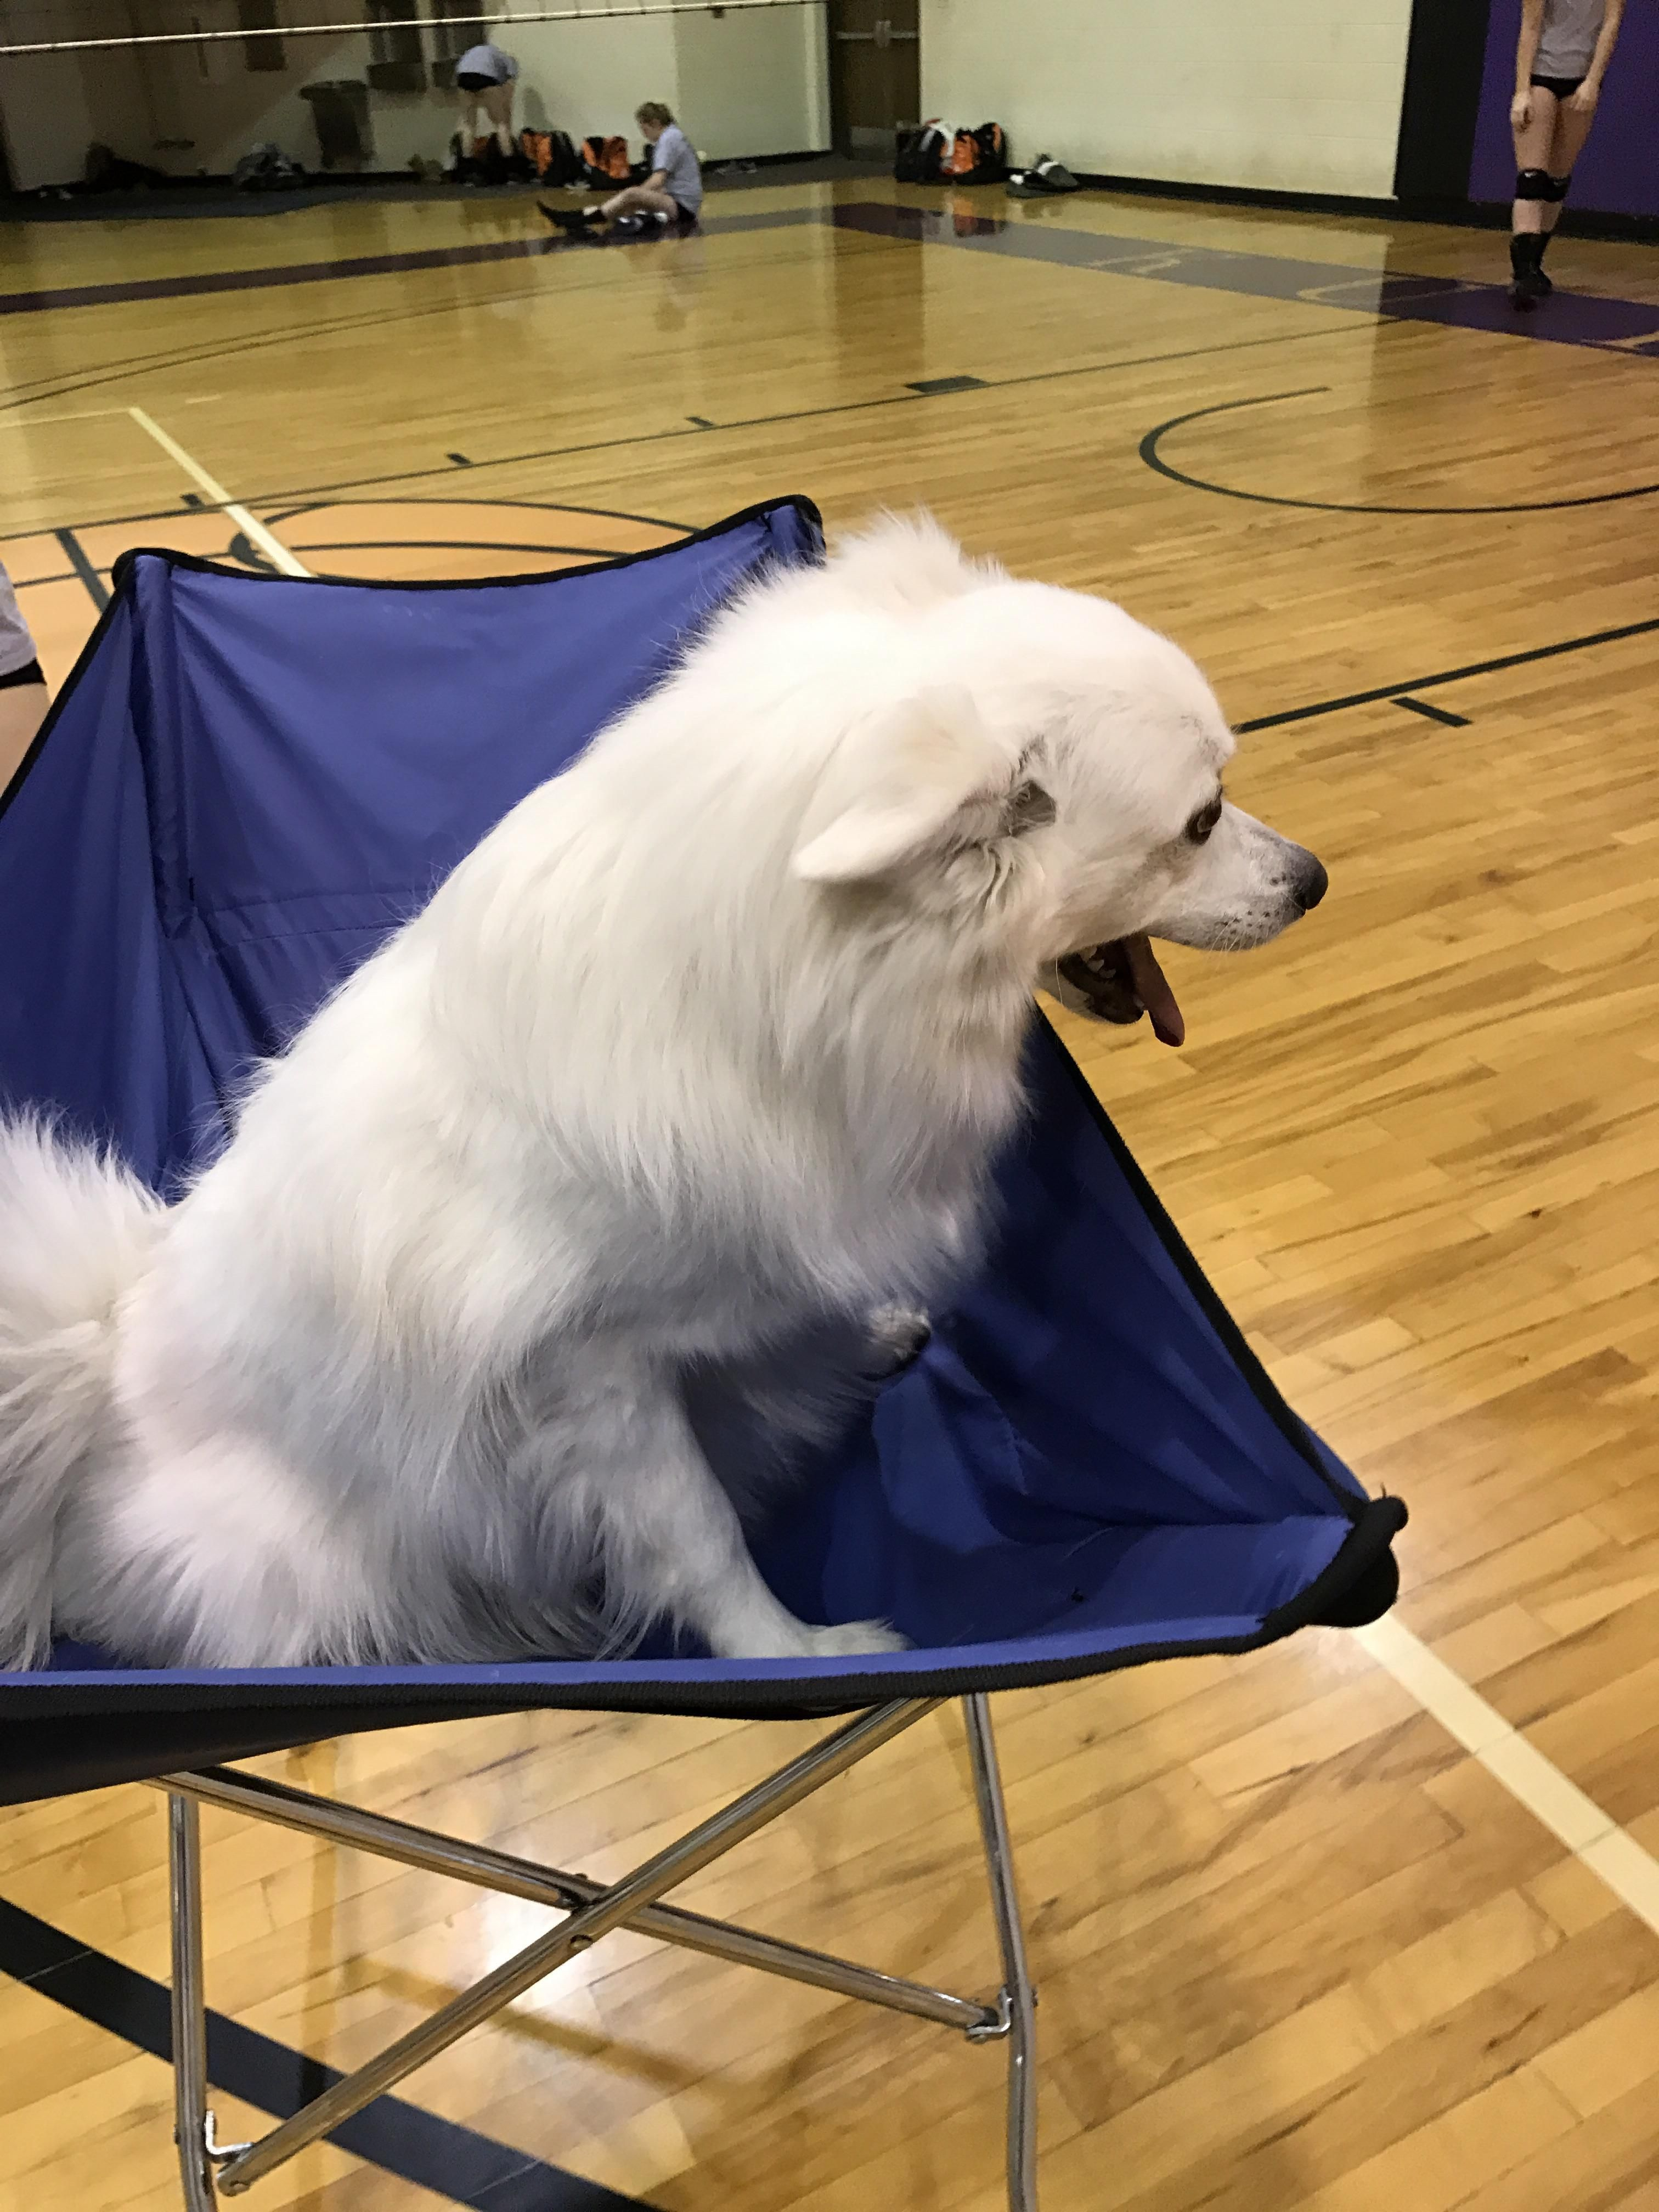 I M A Volleyball Coach I Took My Dog To Practice Today And Put Him In The Ball Cart Cute Animal Pictures Baby Dogs Dog Pictures